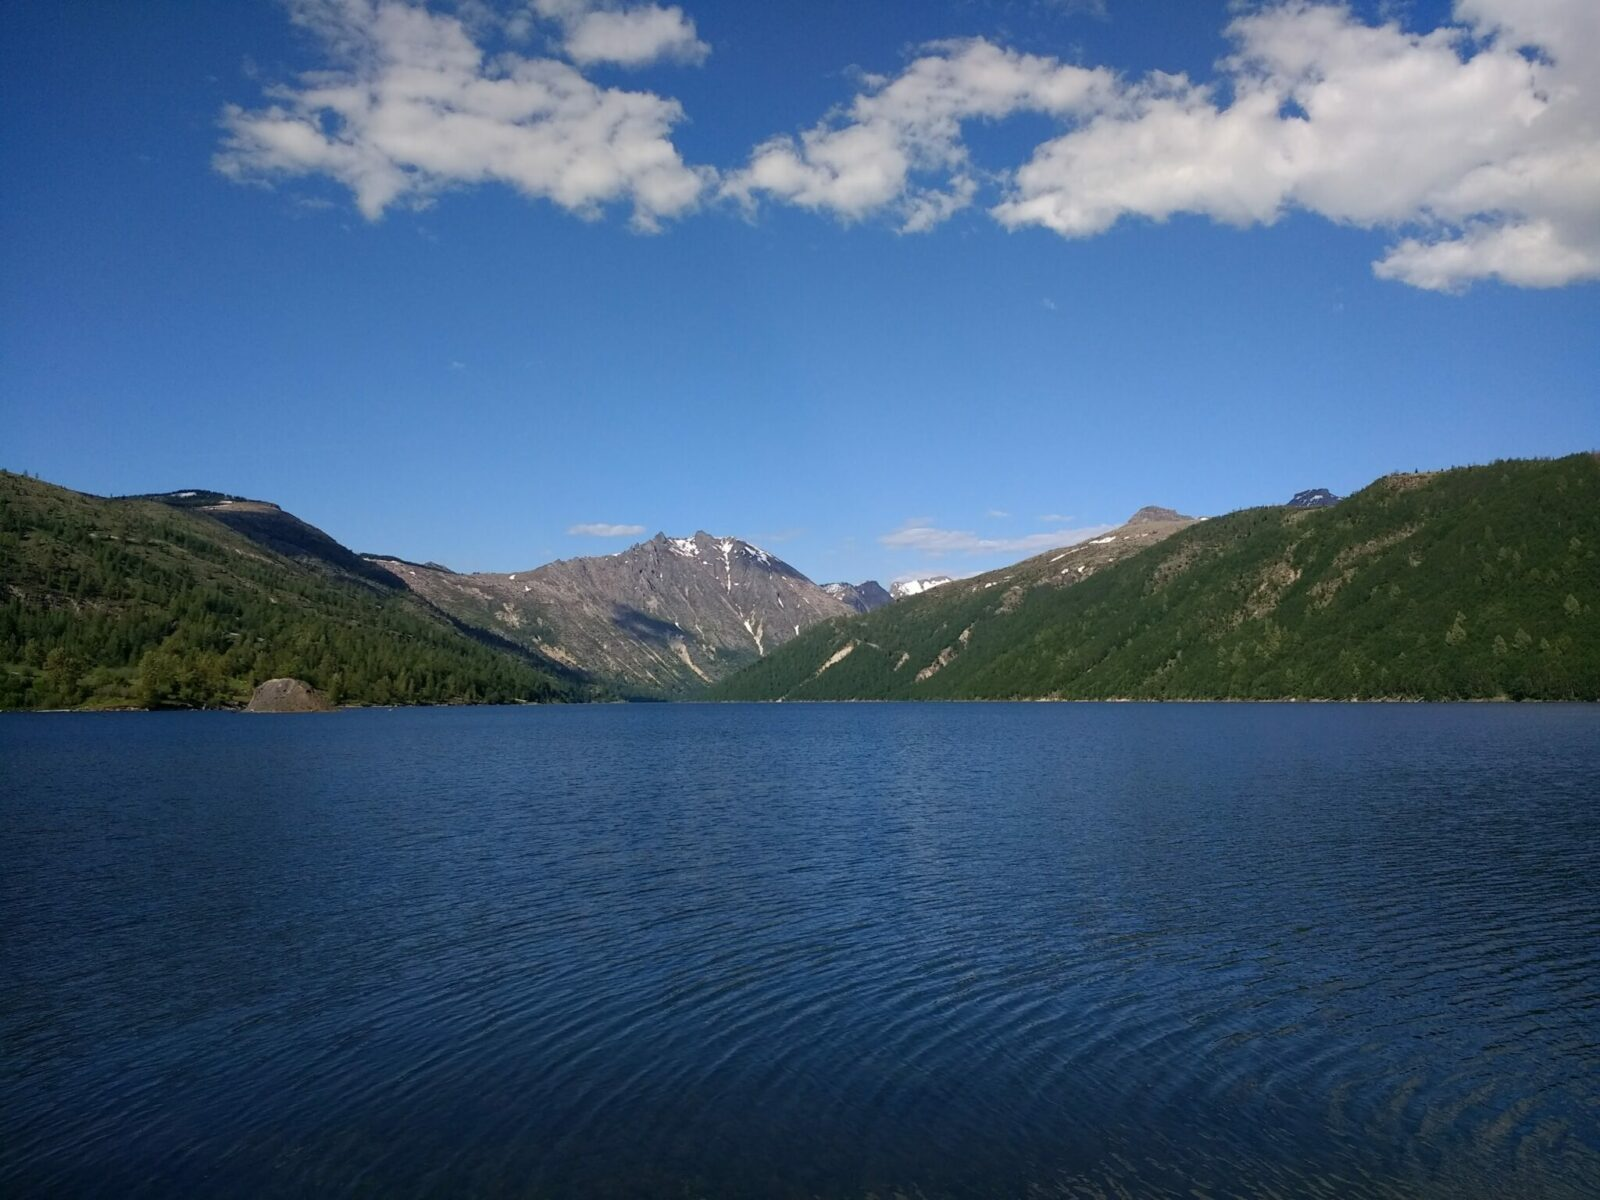 A blue lake surrounded by forested hillsides and mountains